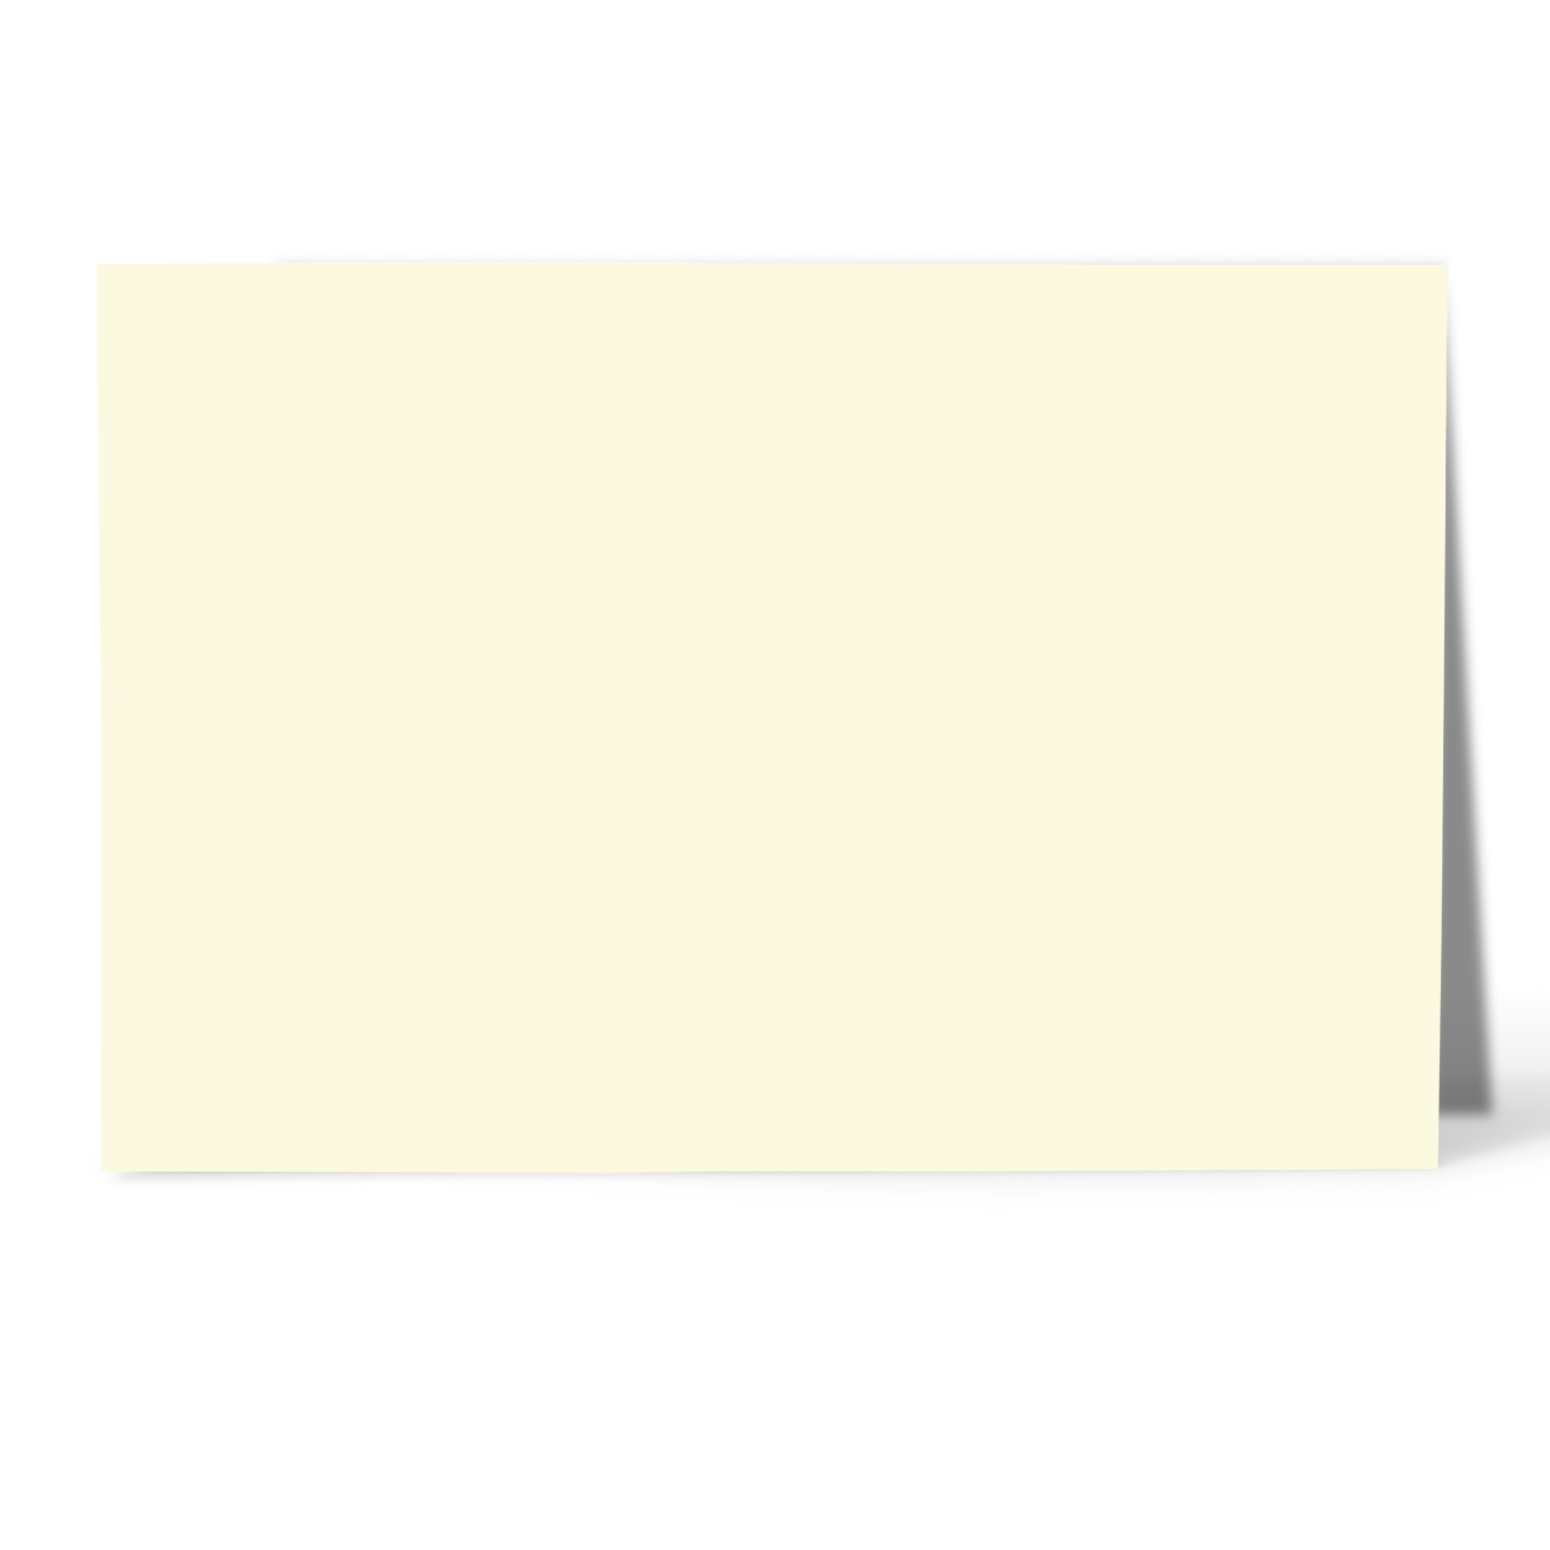 what is the size of a note card